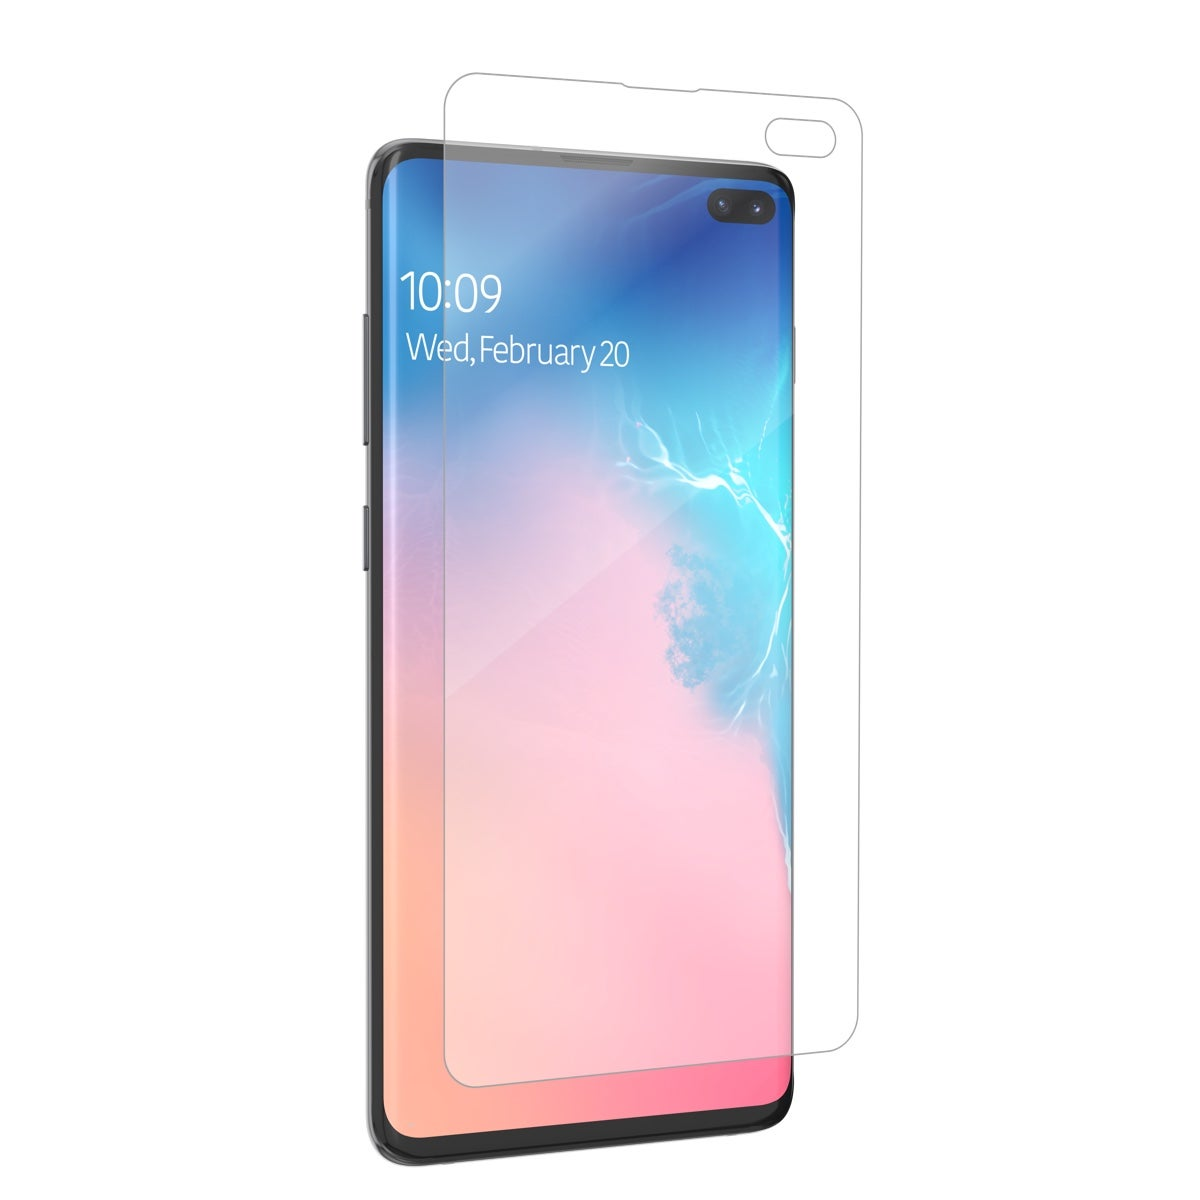 Ultra Visionguard Galaxy S10+ (Case Friendly)